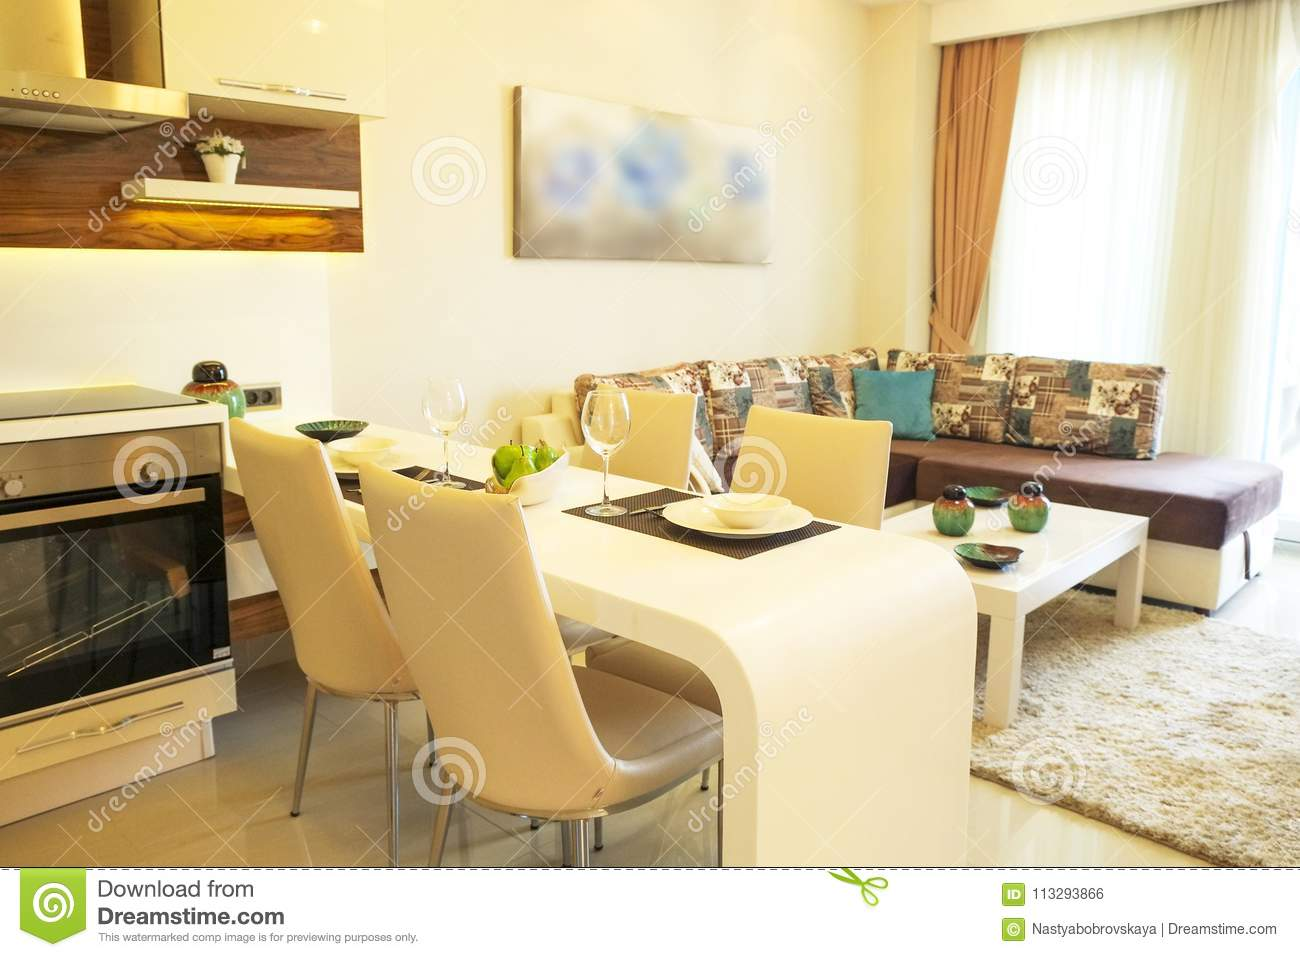 Beautiful Sun Side Appartment With Simple Minimalistic Modern Interior Design Open Plan Kitchen Living Room In Sunlight Stock Photo Image Of Estate Floor 113293866